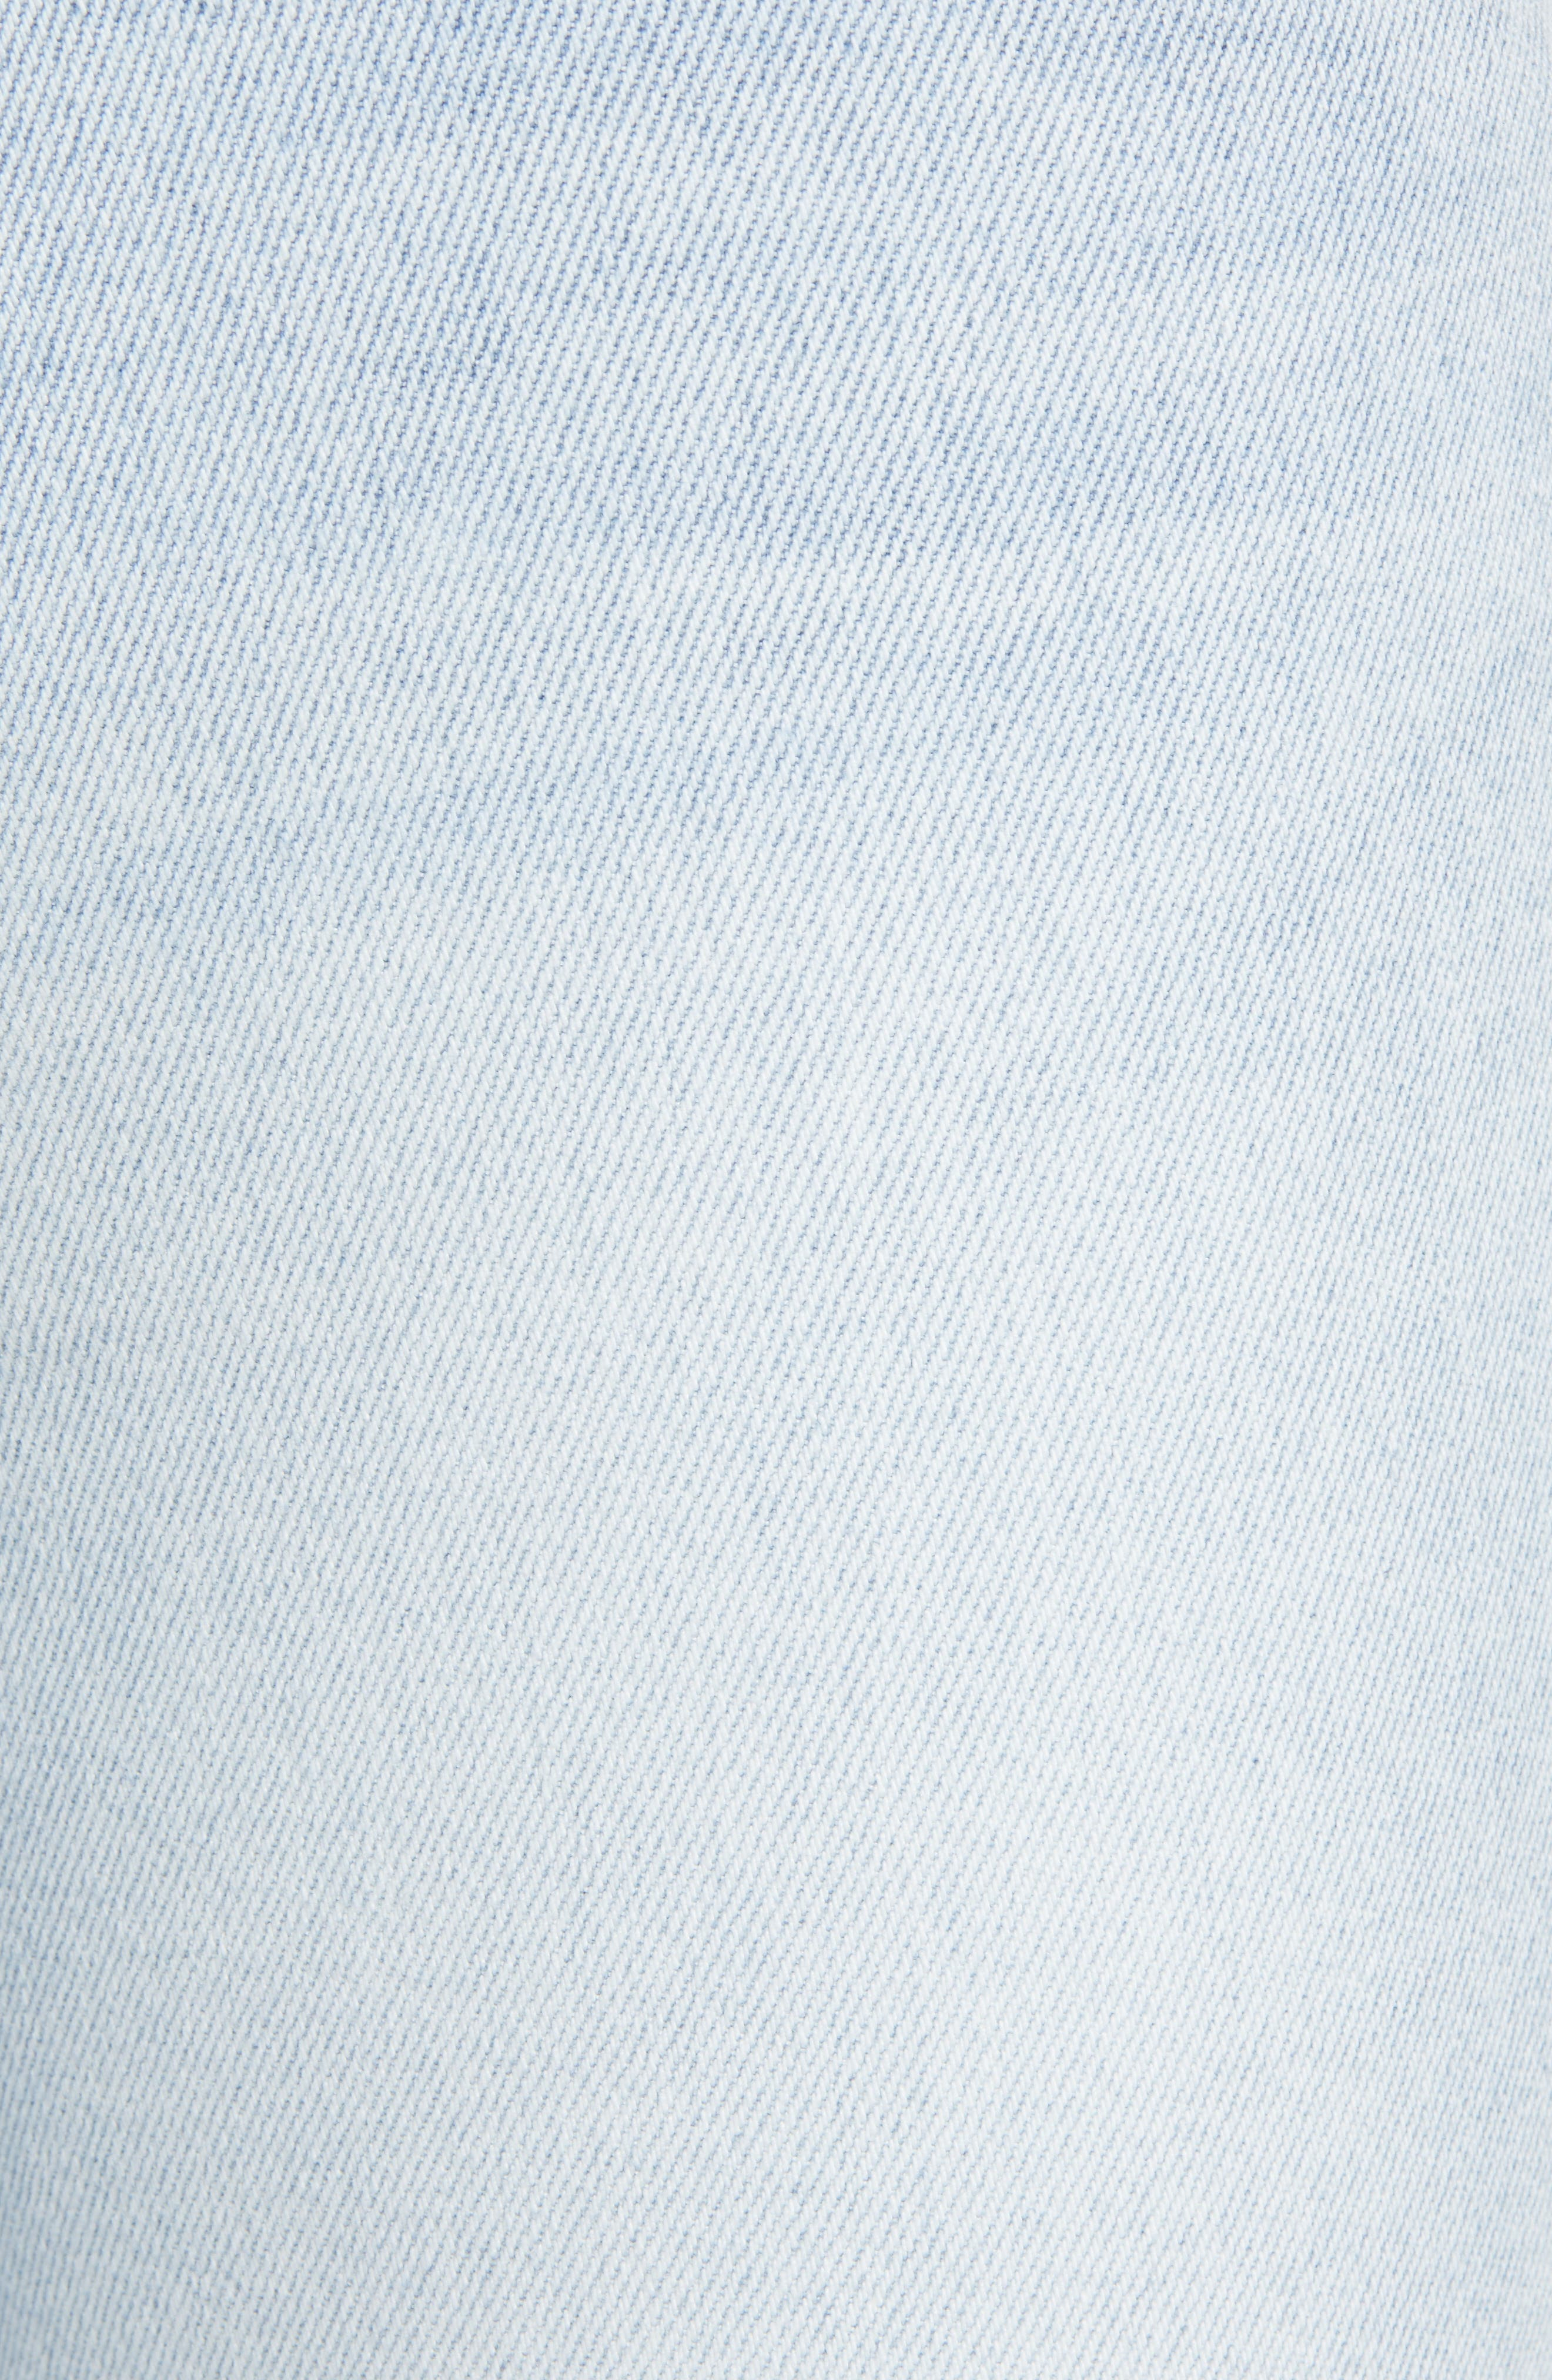 7 FOR ALL MANKIND<SUP>®</SUP>, Luxe Vintage High Waist Ankle Skinny Jeans, Alternate thumbnail 6, color, LUXE VINTAGE CLOUD